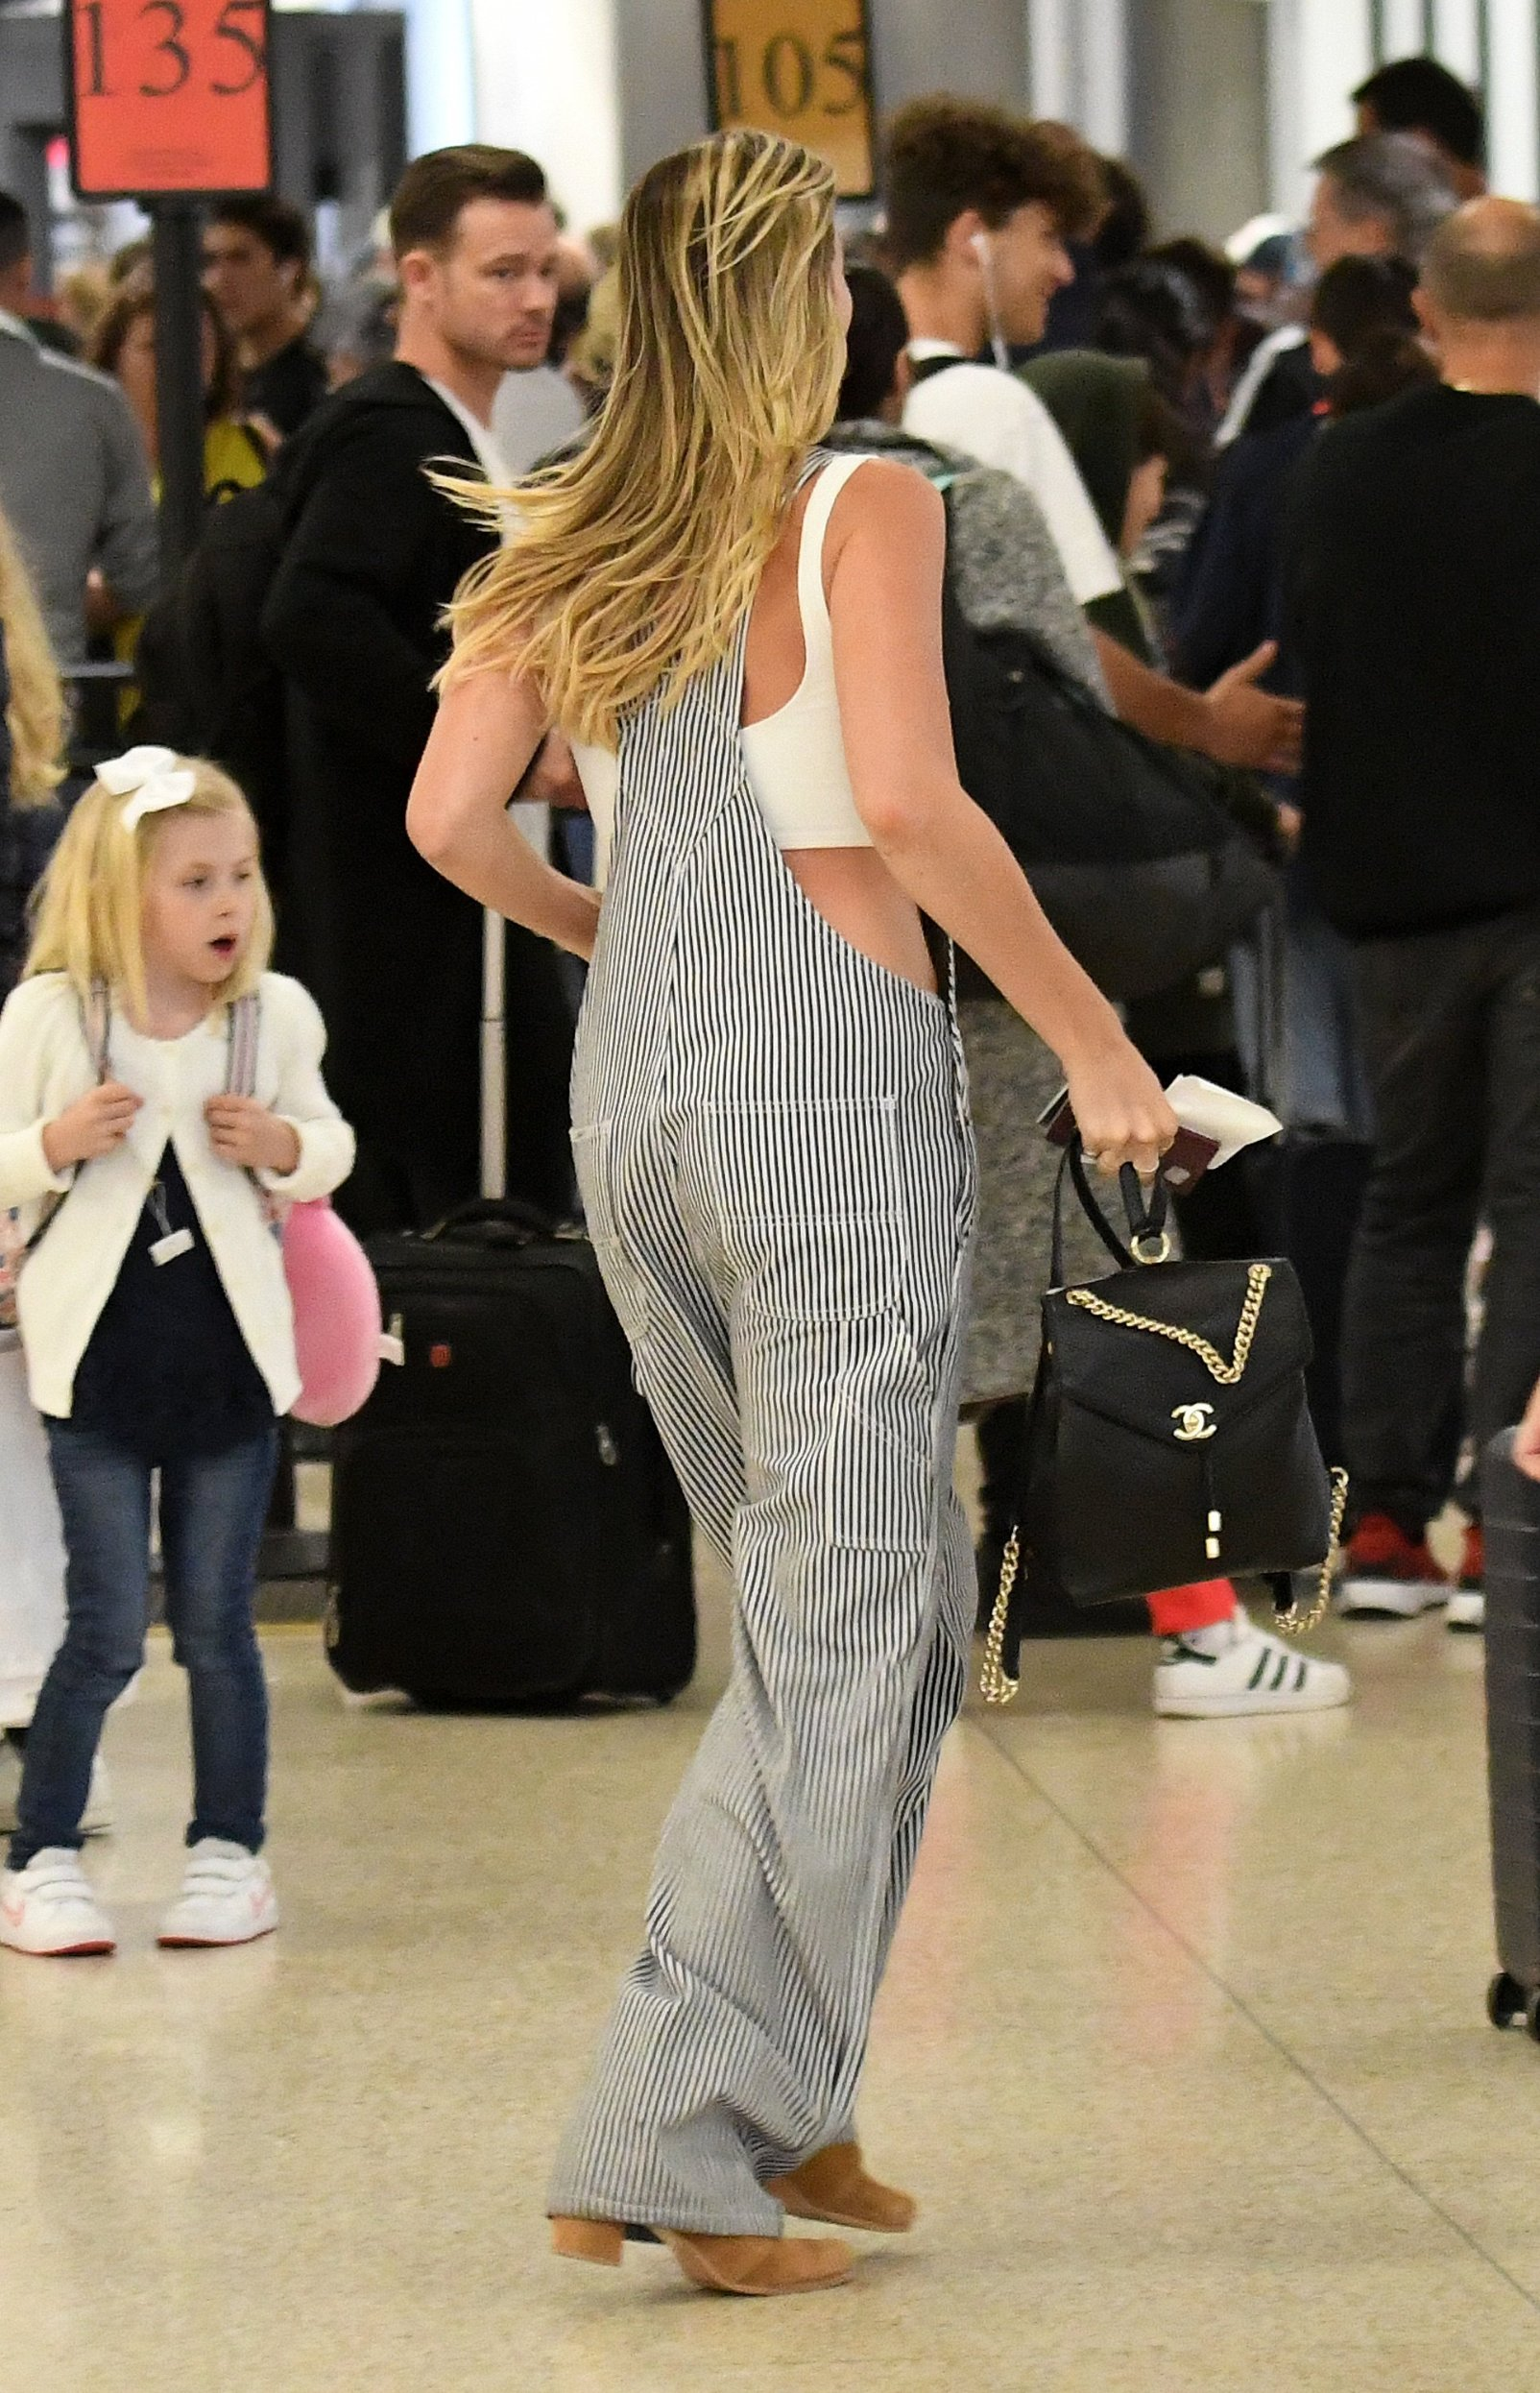 EXCLUSIVE: Actress Margot Robbie and husband Tom Ackerley are seen running through Miami International Airport  to catch a flight in Miami, Florida. The actress looked cute in a crop top under stripped overalls. 27 Apr 2019, Image: 429404246, License: Rights-managed, Restrictions: World Rights, Model Release: no, Credit line: Profimedia, Mega Agency